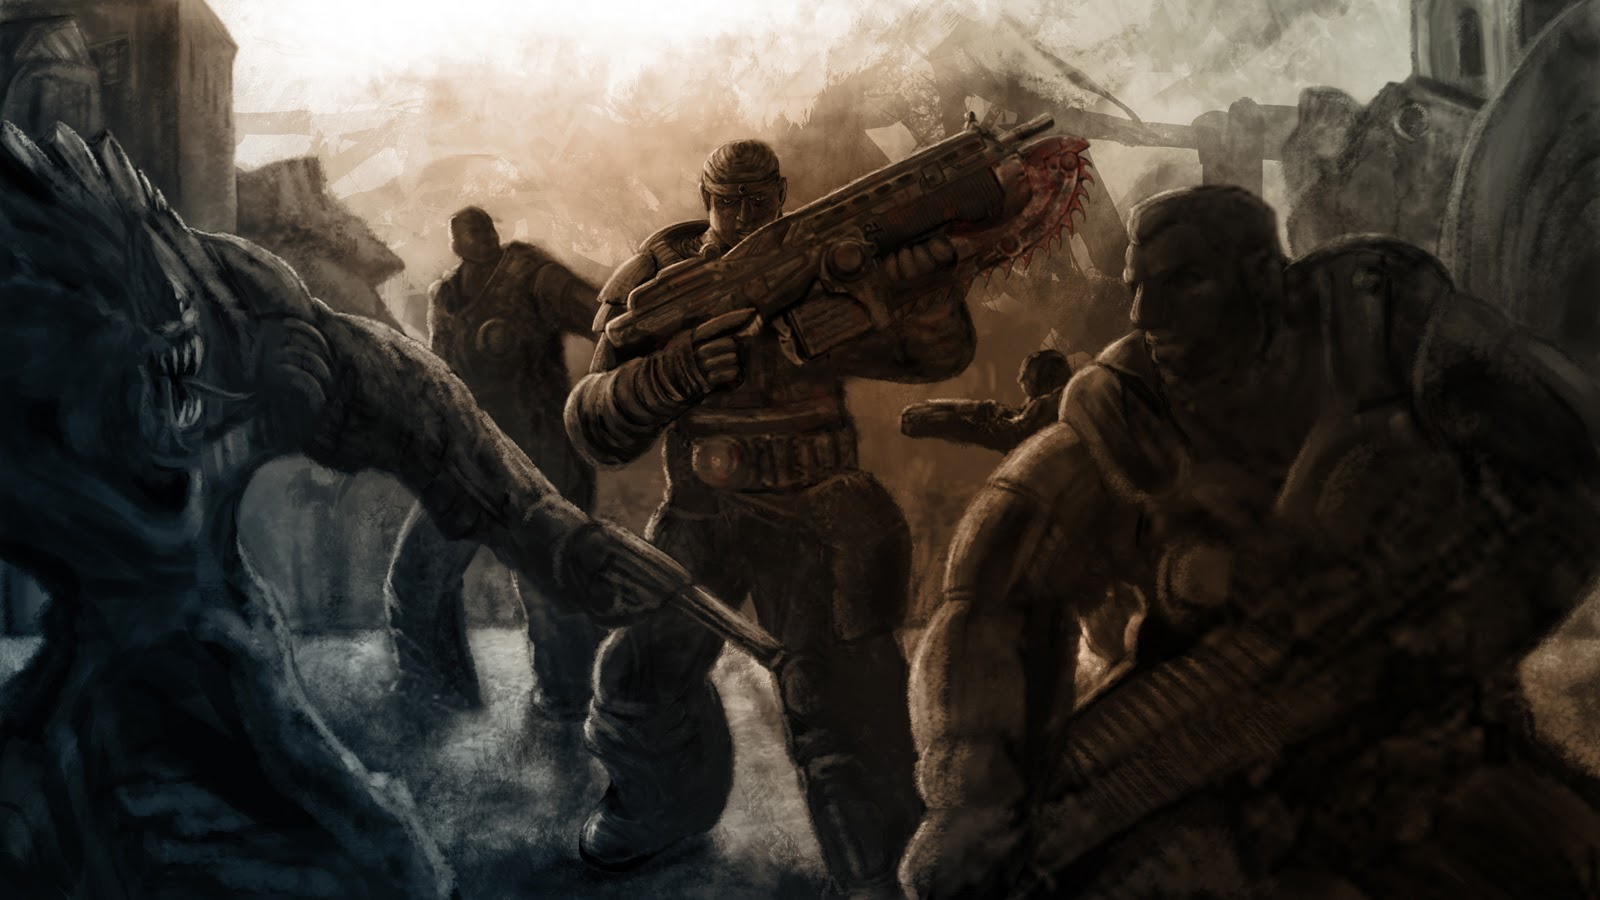 Gears of War HD & Widescreen Wallpaper 0.717445543159627